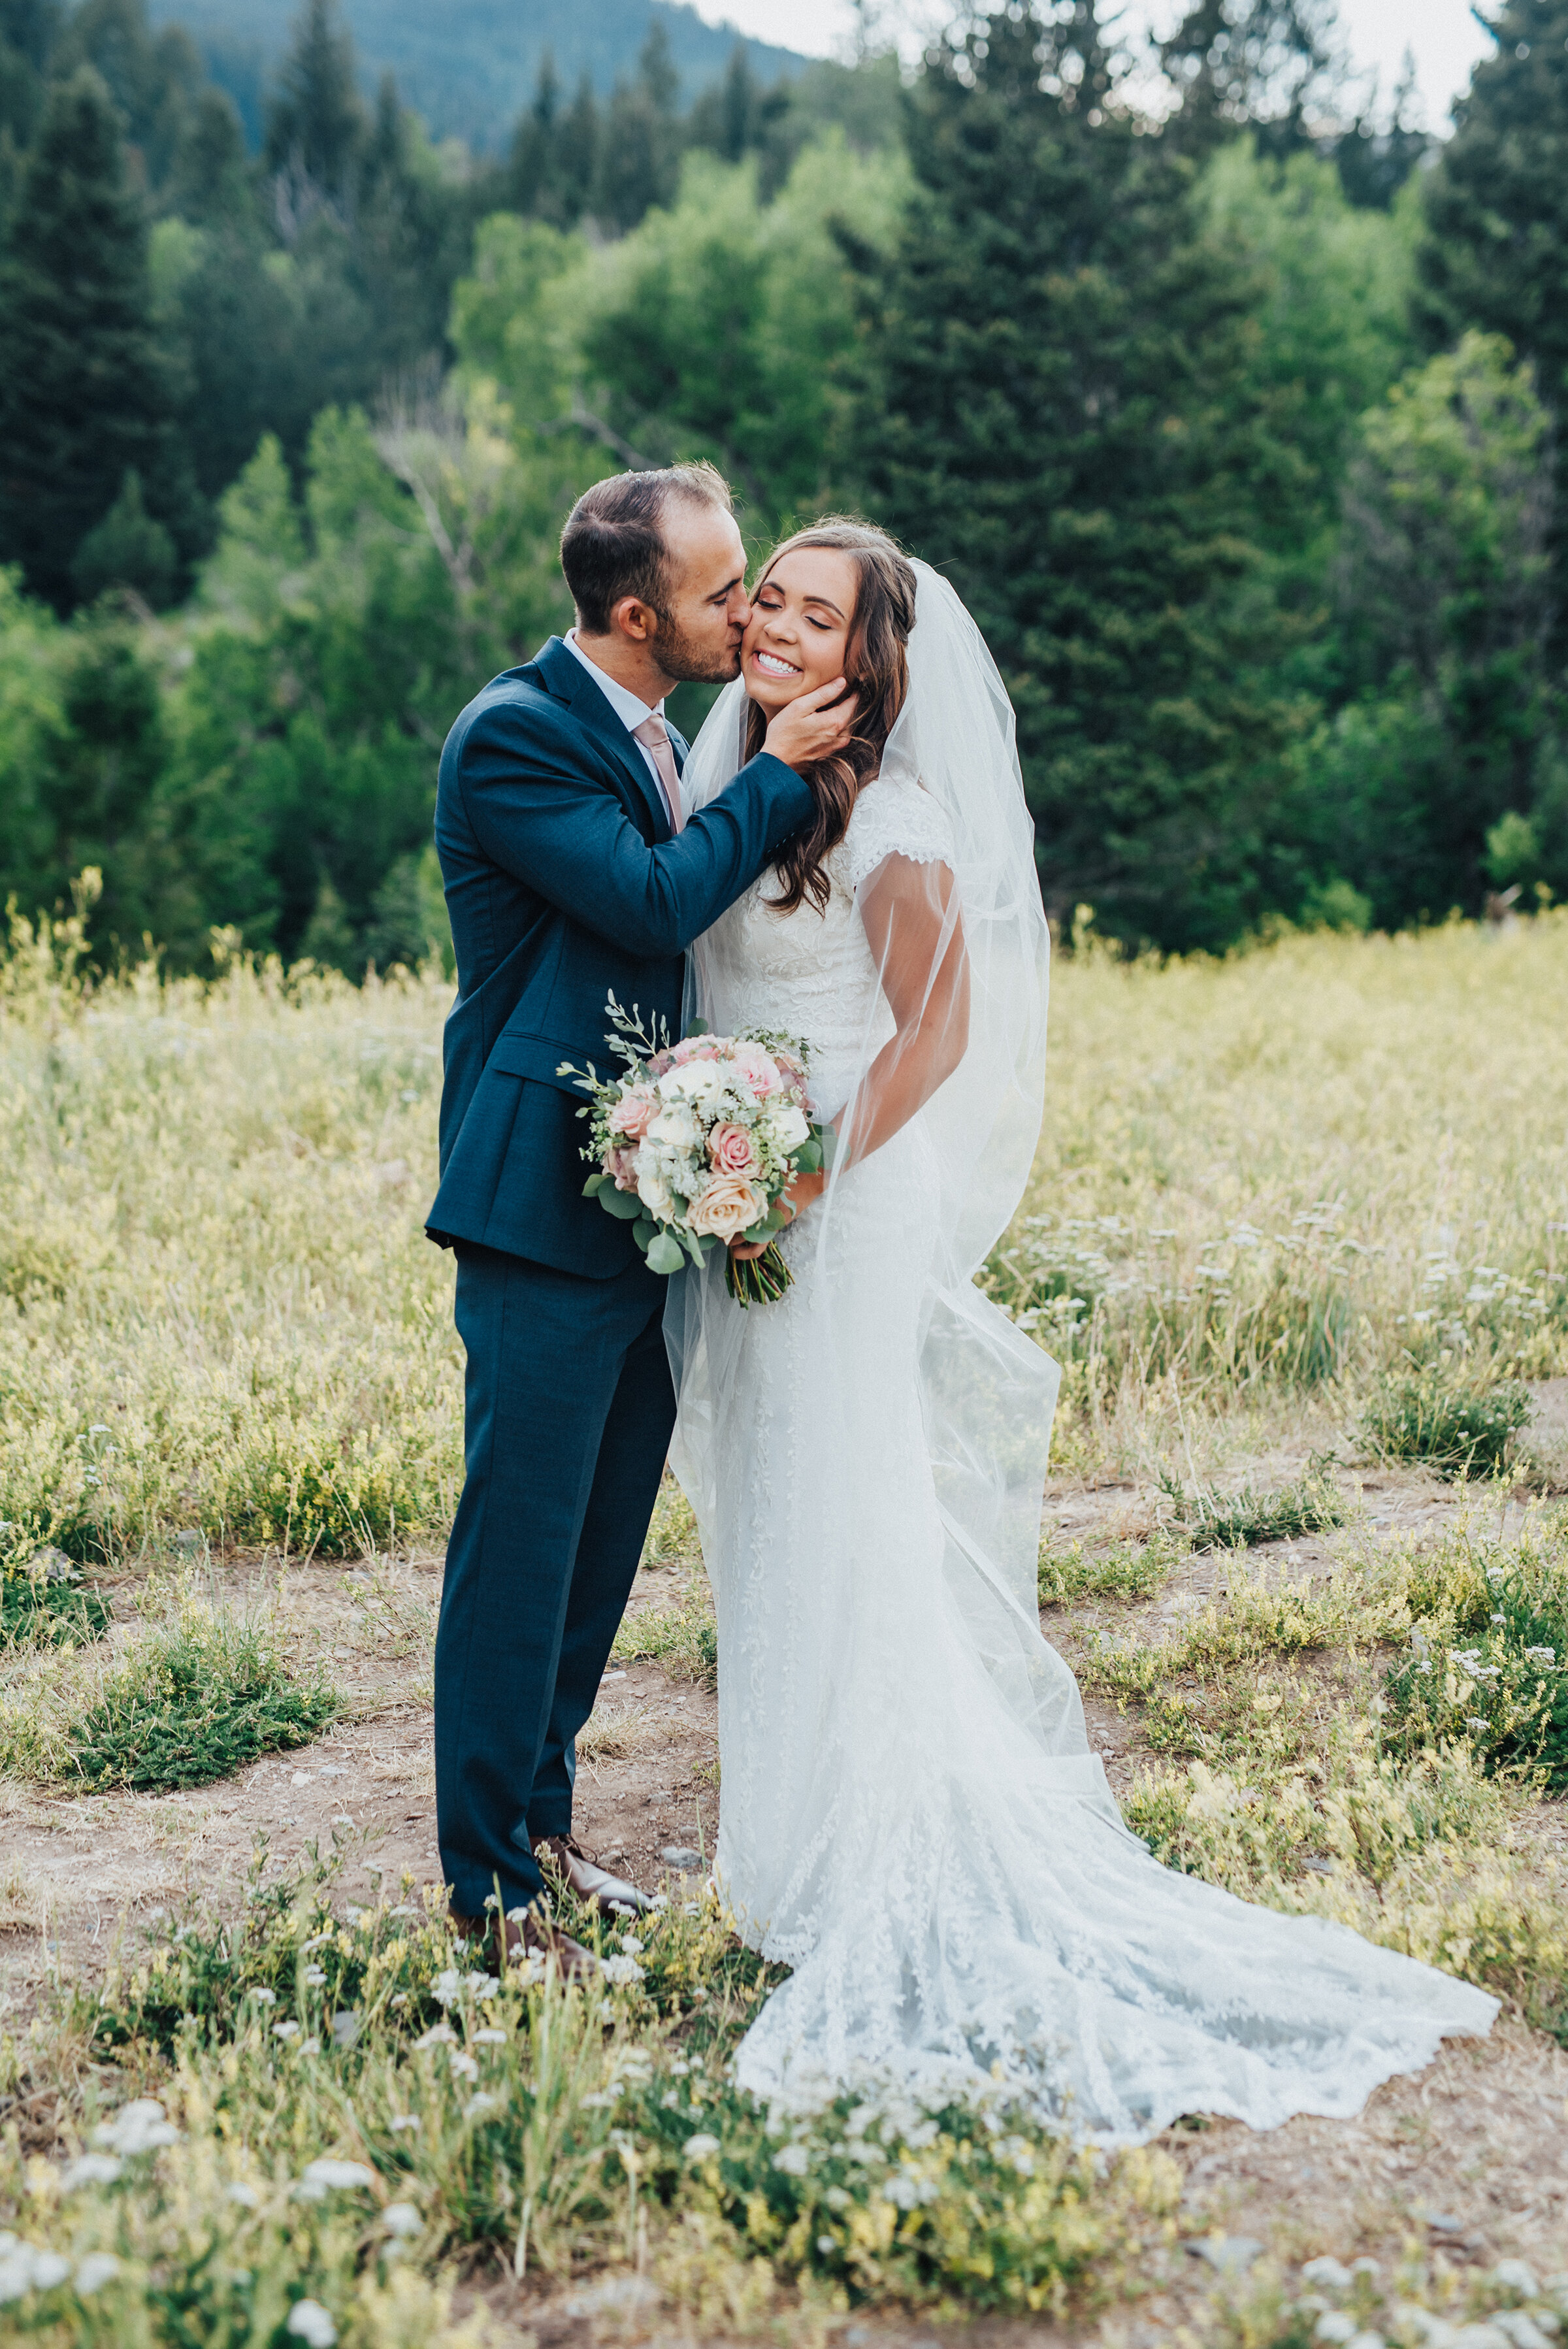 A smitten husband gently caresses his smiling bride's cheek while giving her a soft kiss.holding bouquet in traditional position evergreen trees eyes closed utah photography landscape navy blue suit light pink tie light pink bouquet #husbandandwife #younglove #tibbleforkreservoir #utahwedding #americanforkcanyon #coupleshoot #formals #weddingphotography #couplesgoals #couplephotography #weddingphotographer #couplesphotography #groom #bride